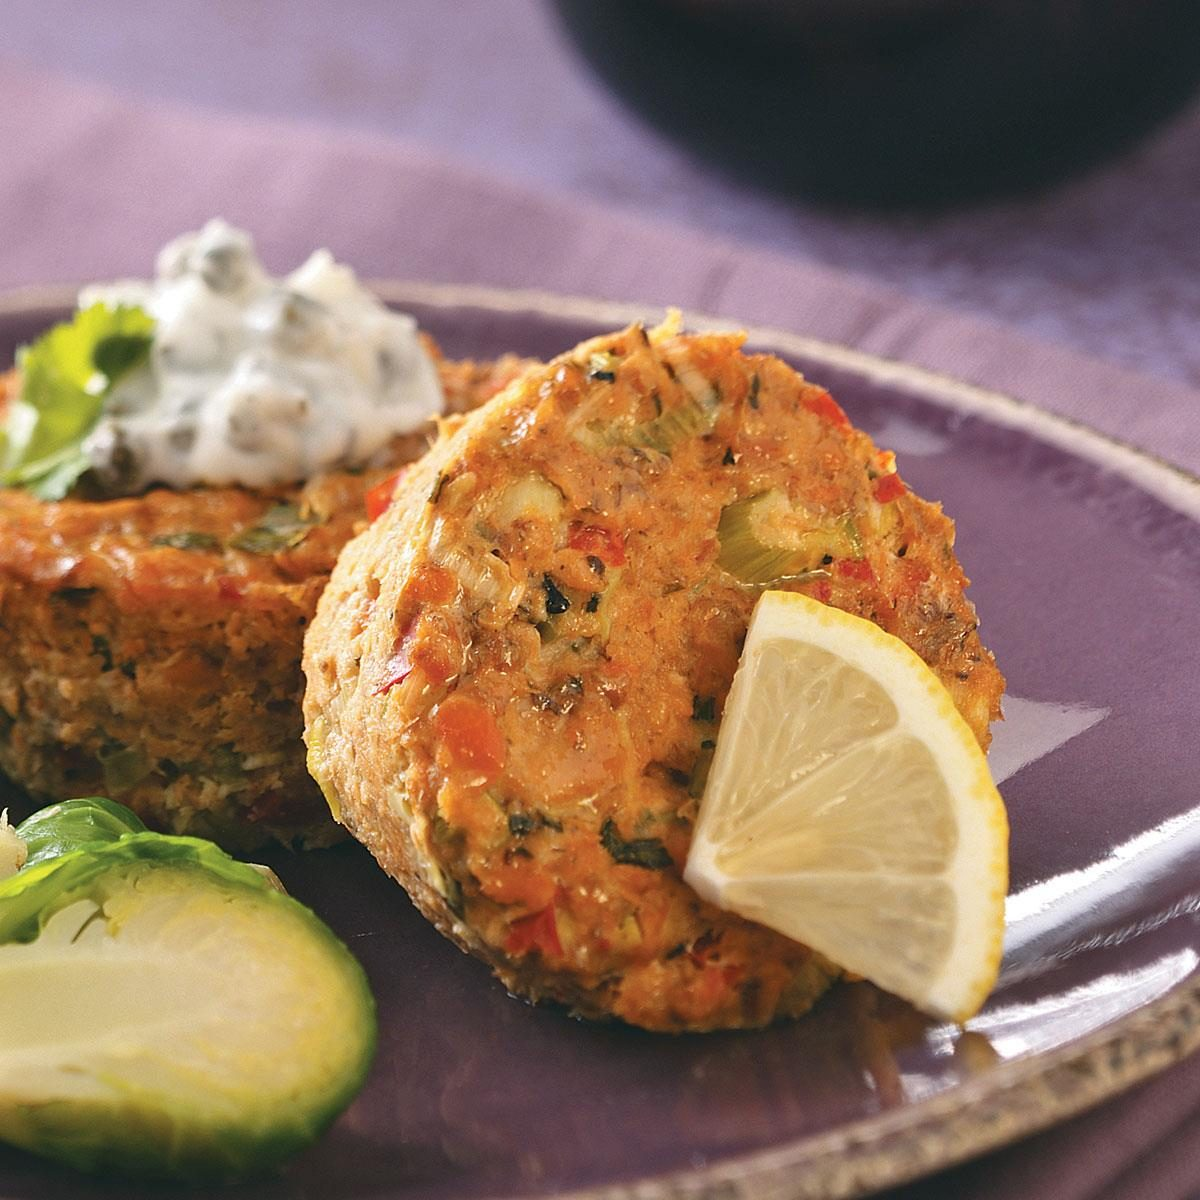 Baked Salmon Cakes From Canned Salmon